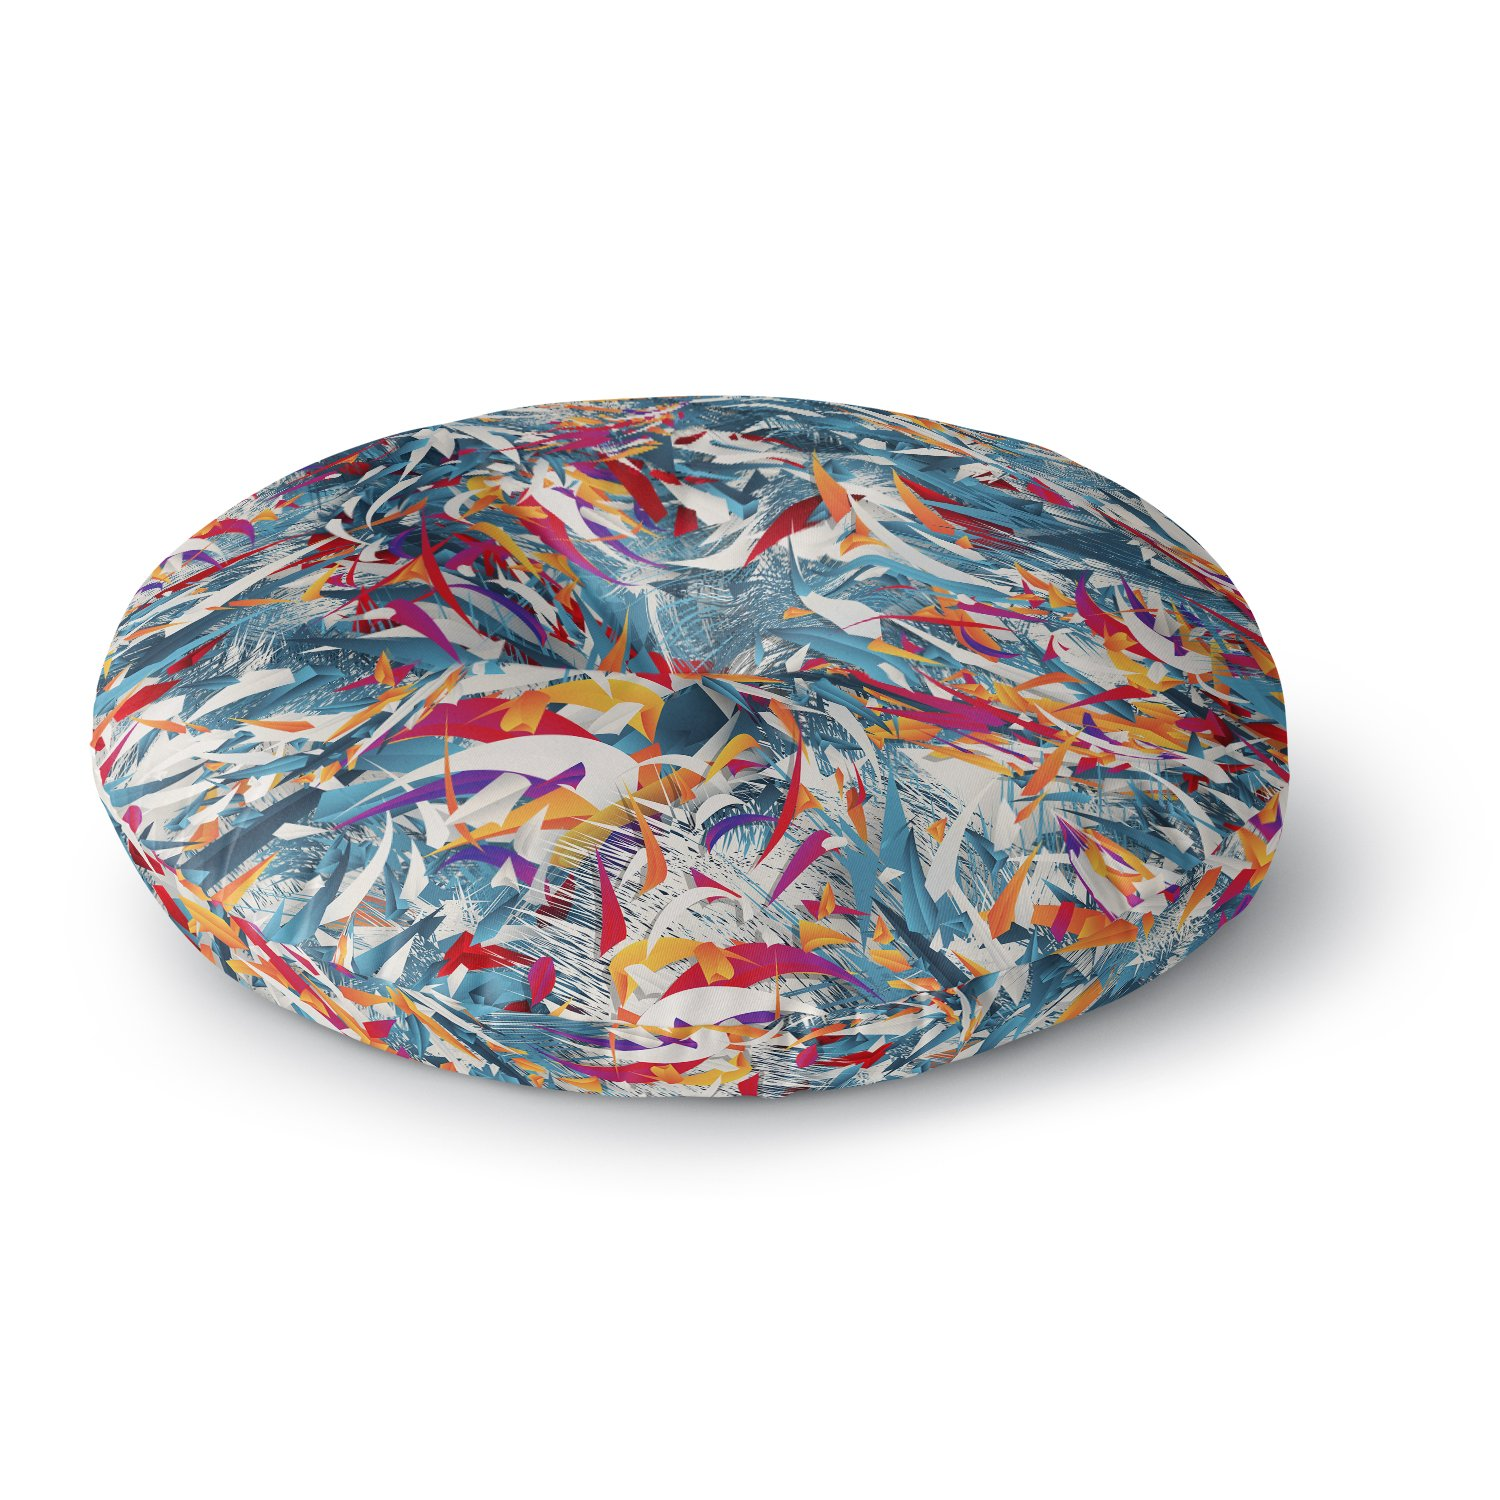 26 Round Floor Pillow Kess InHouse Danny Ivan Excited Colours Blue Abstract